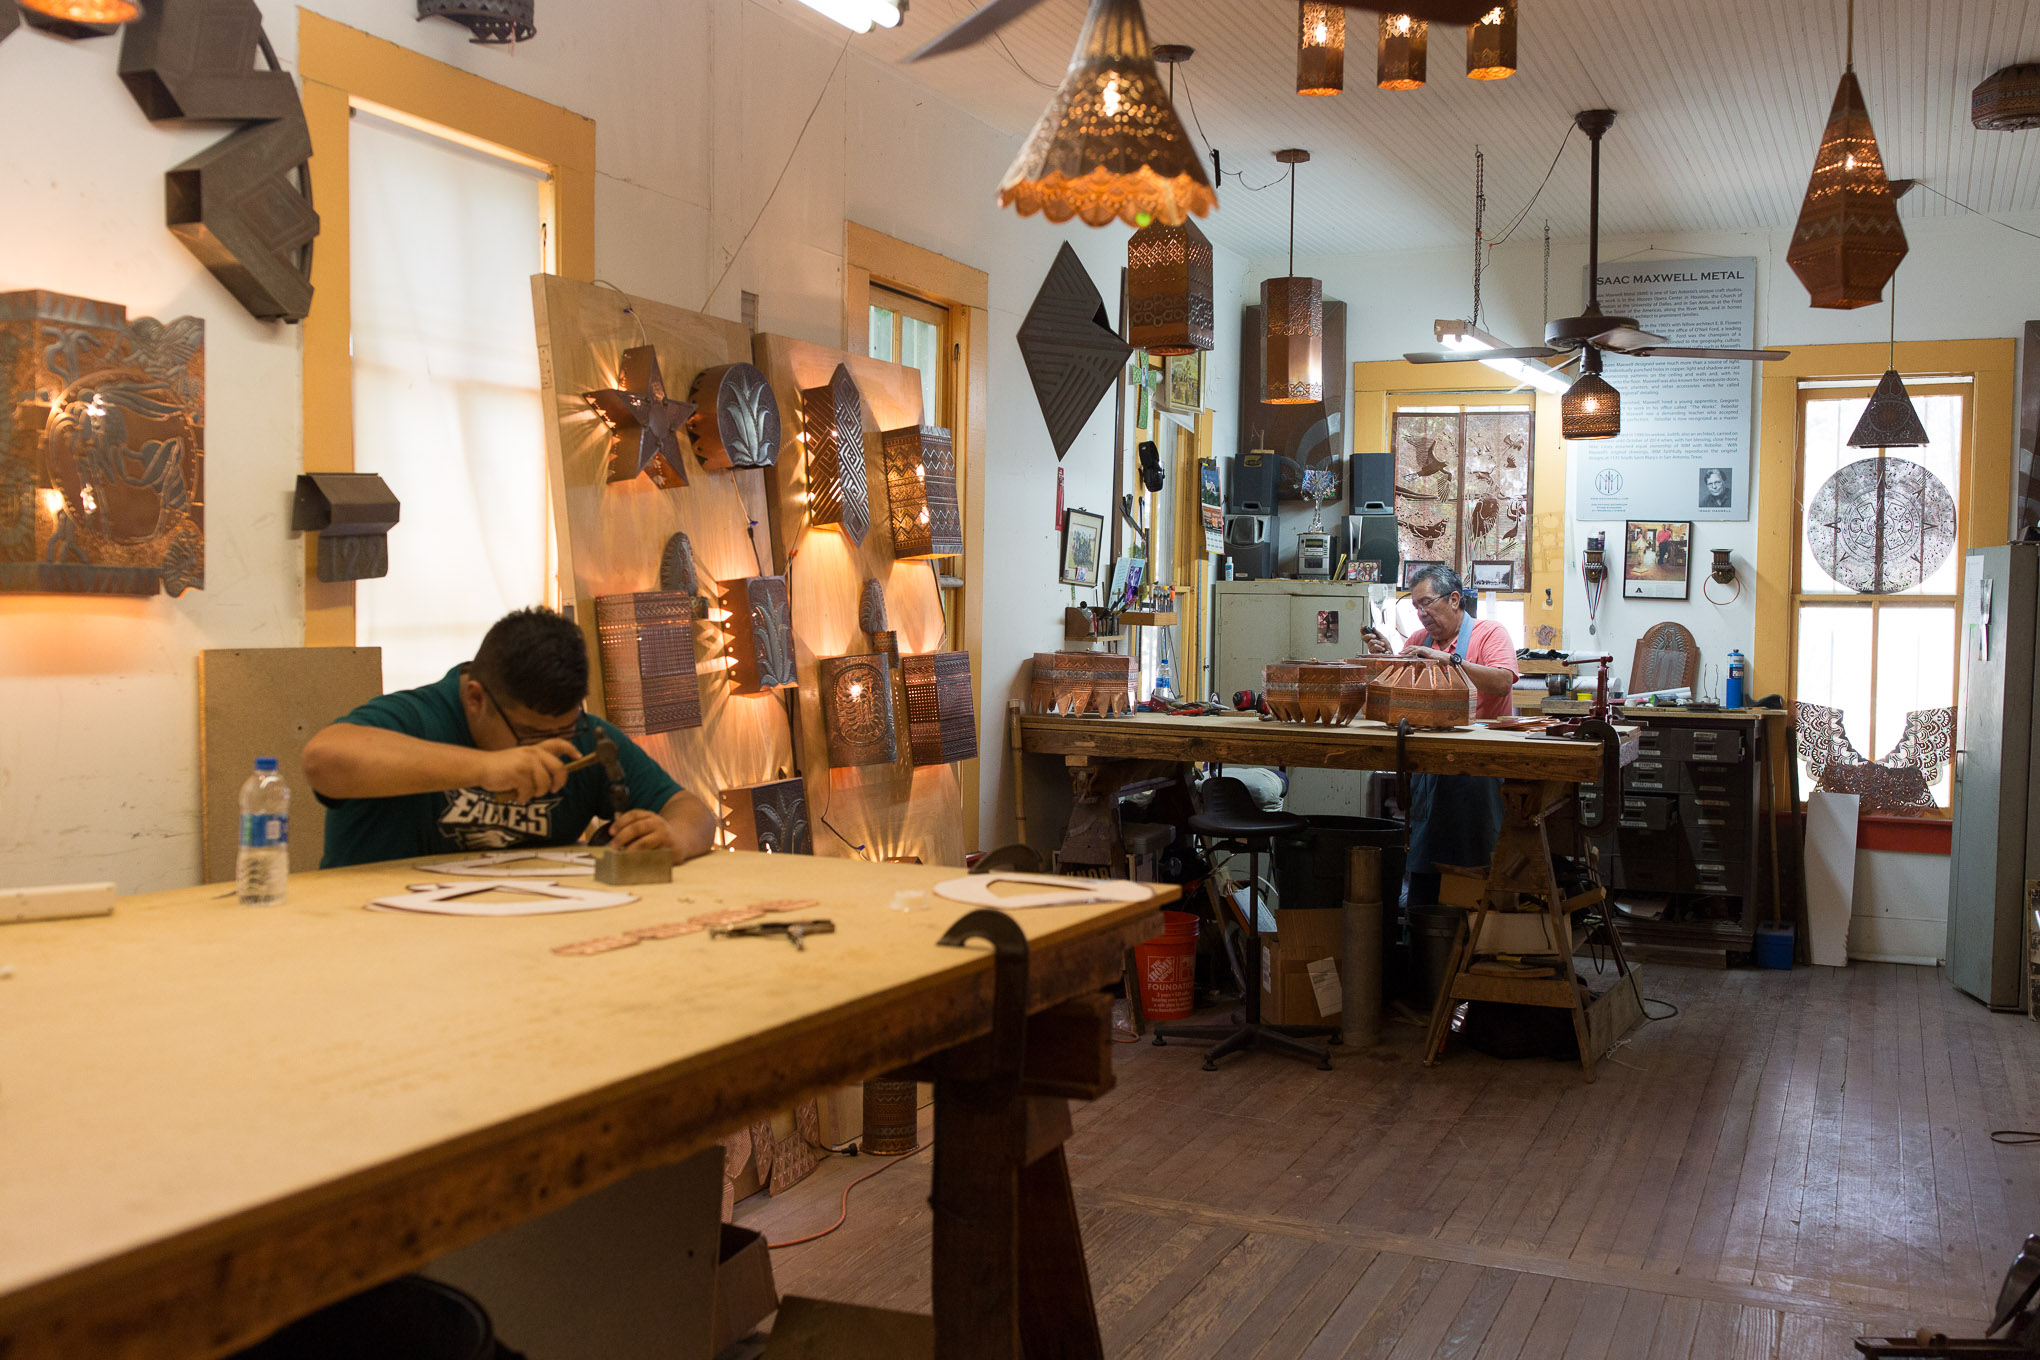 Gregorio Rebollar and his grandson Abel Gonzales work in a family craft that has been in the works for 40 years.